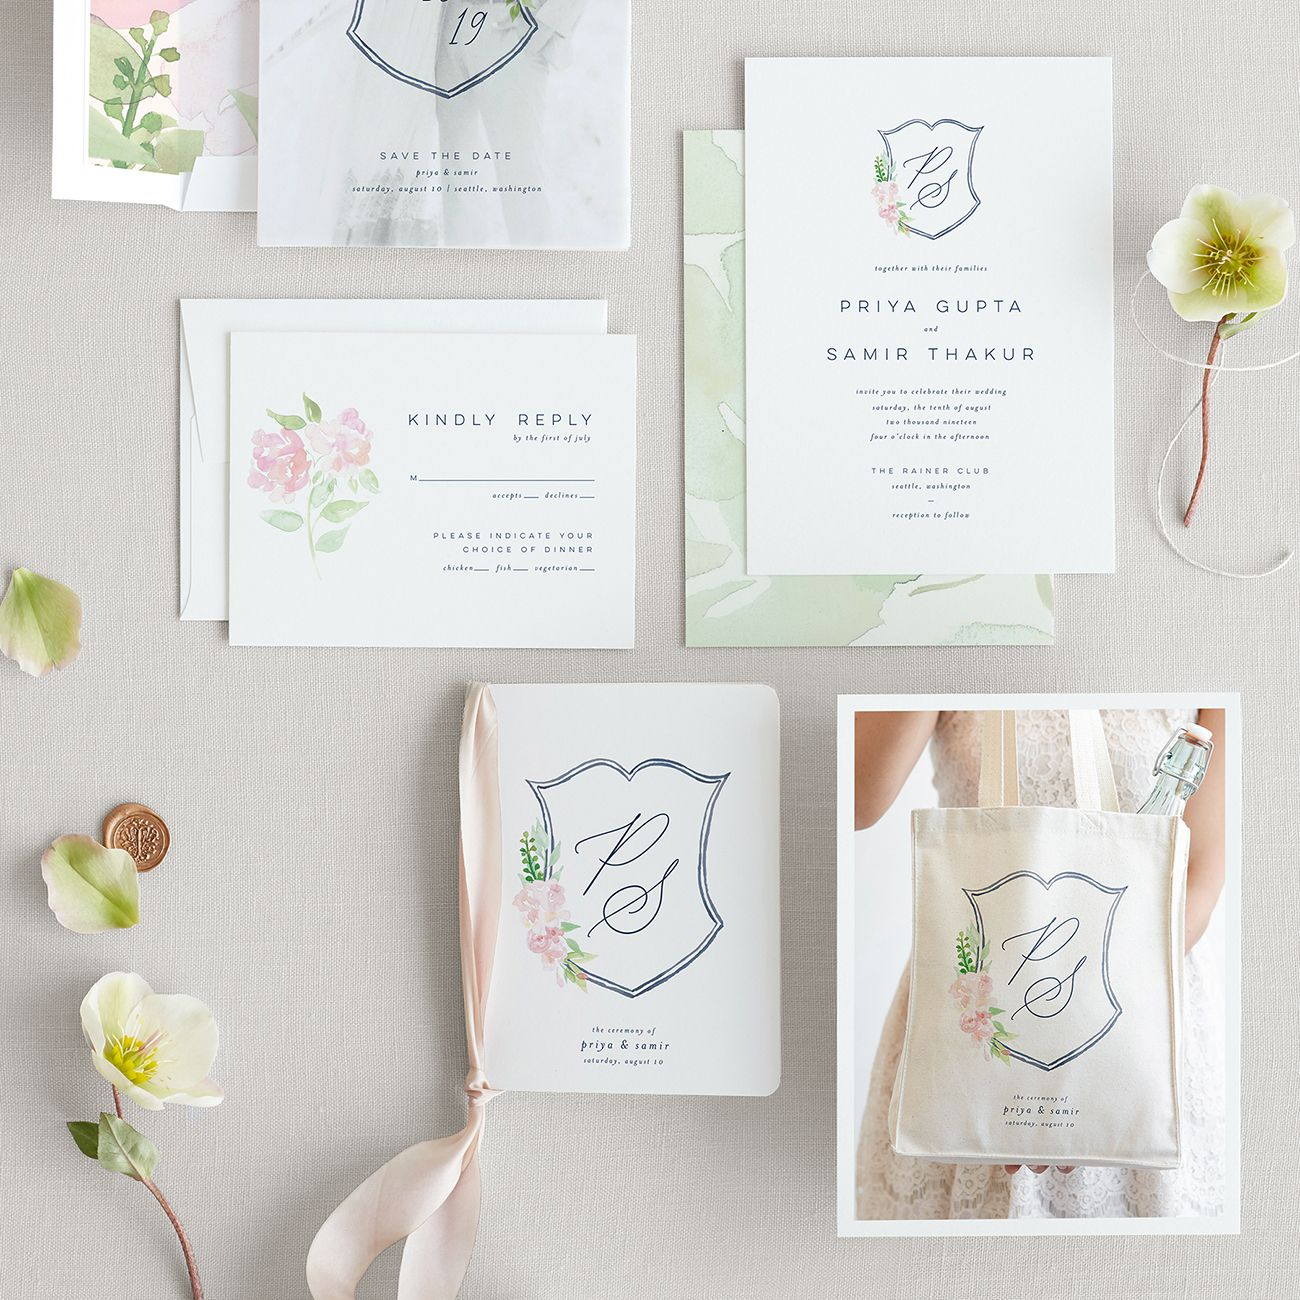 Our Fave Minted Wedding Invitation Suites Green Wedding Shoes In 2020 Minted Wedding Invitations Fun Wedding Invitations Custom Wedding Invitations